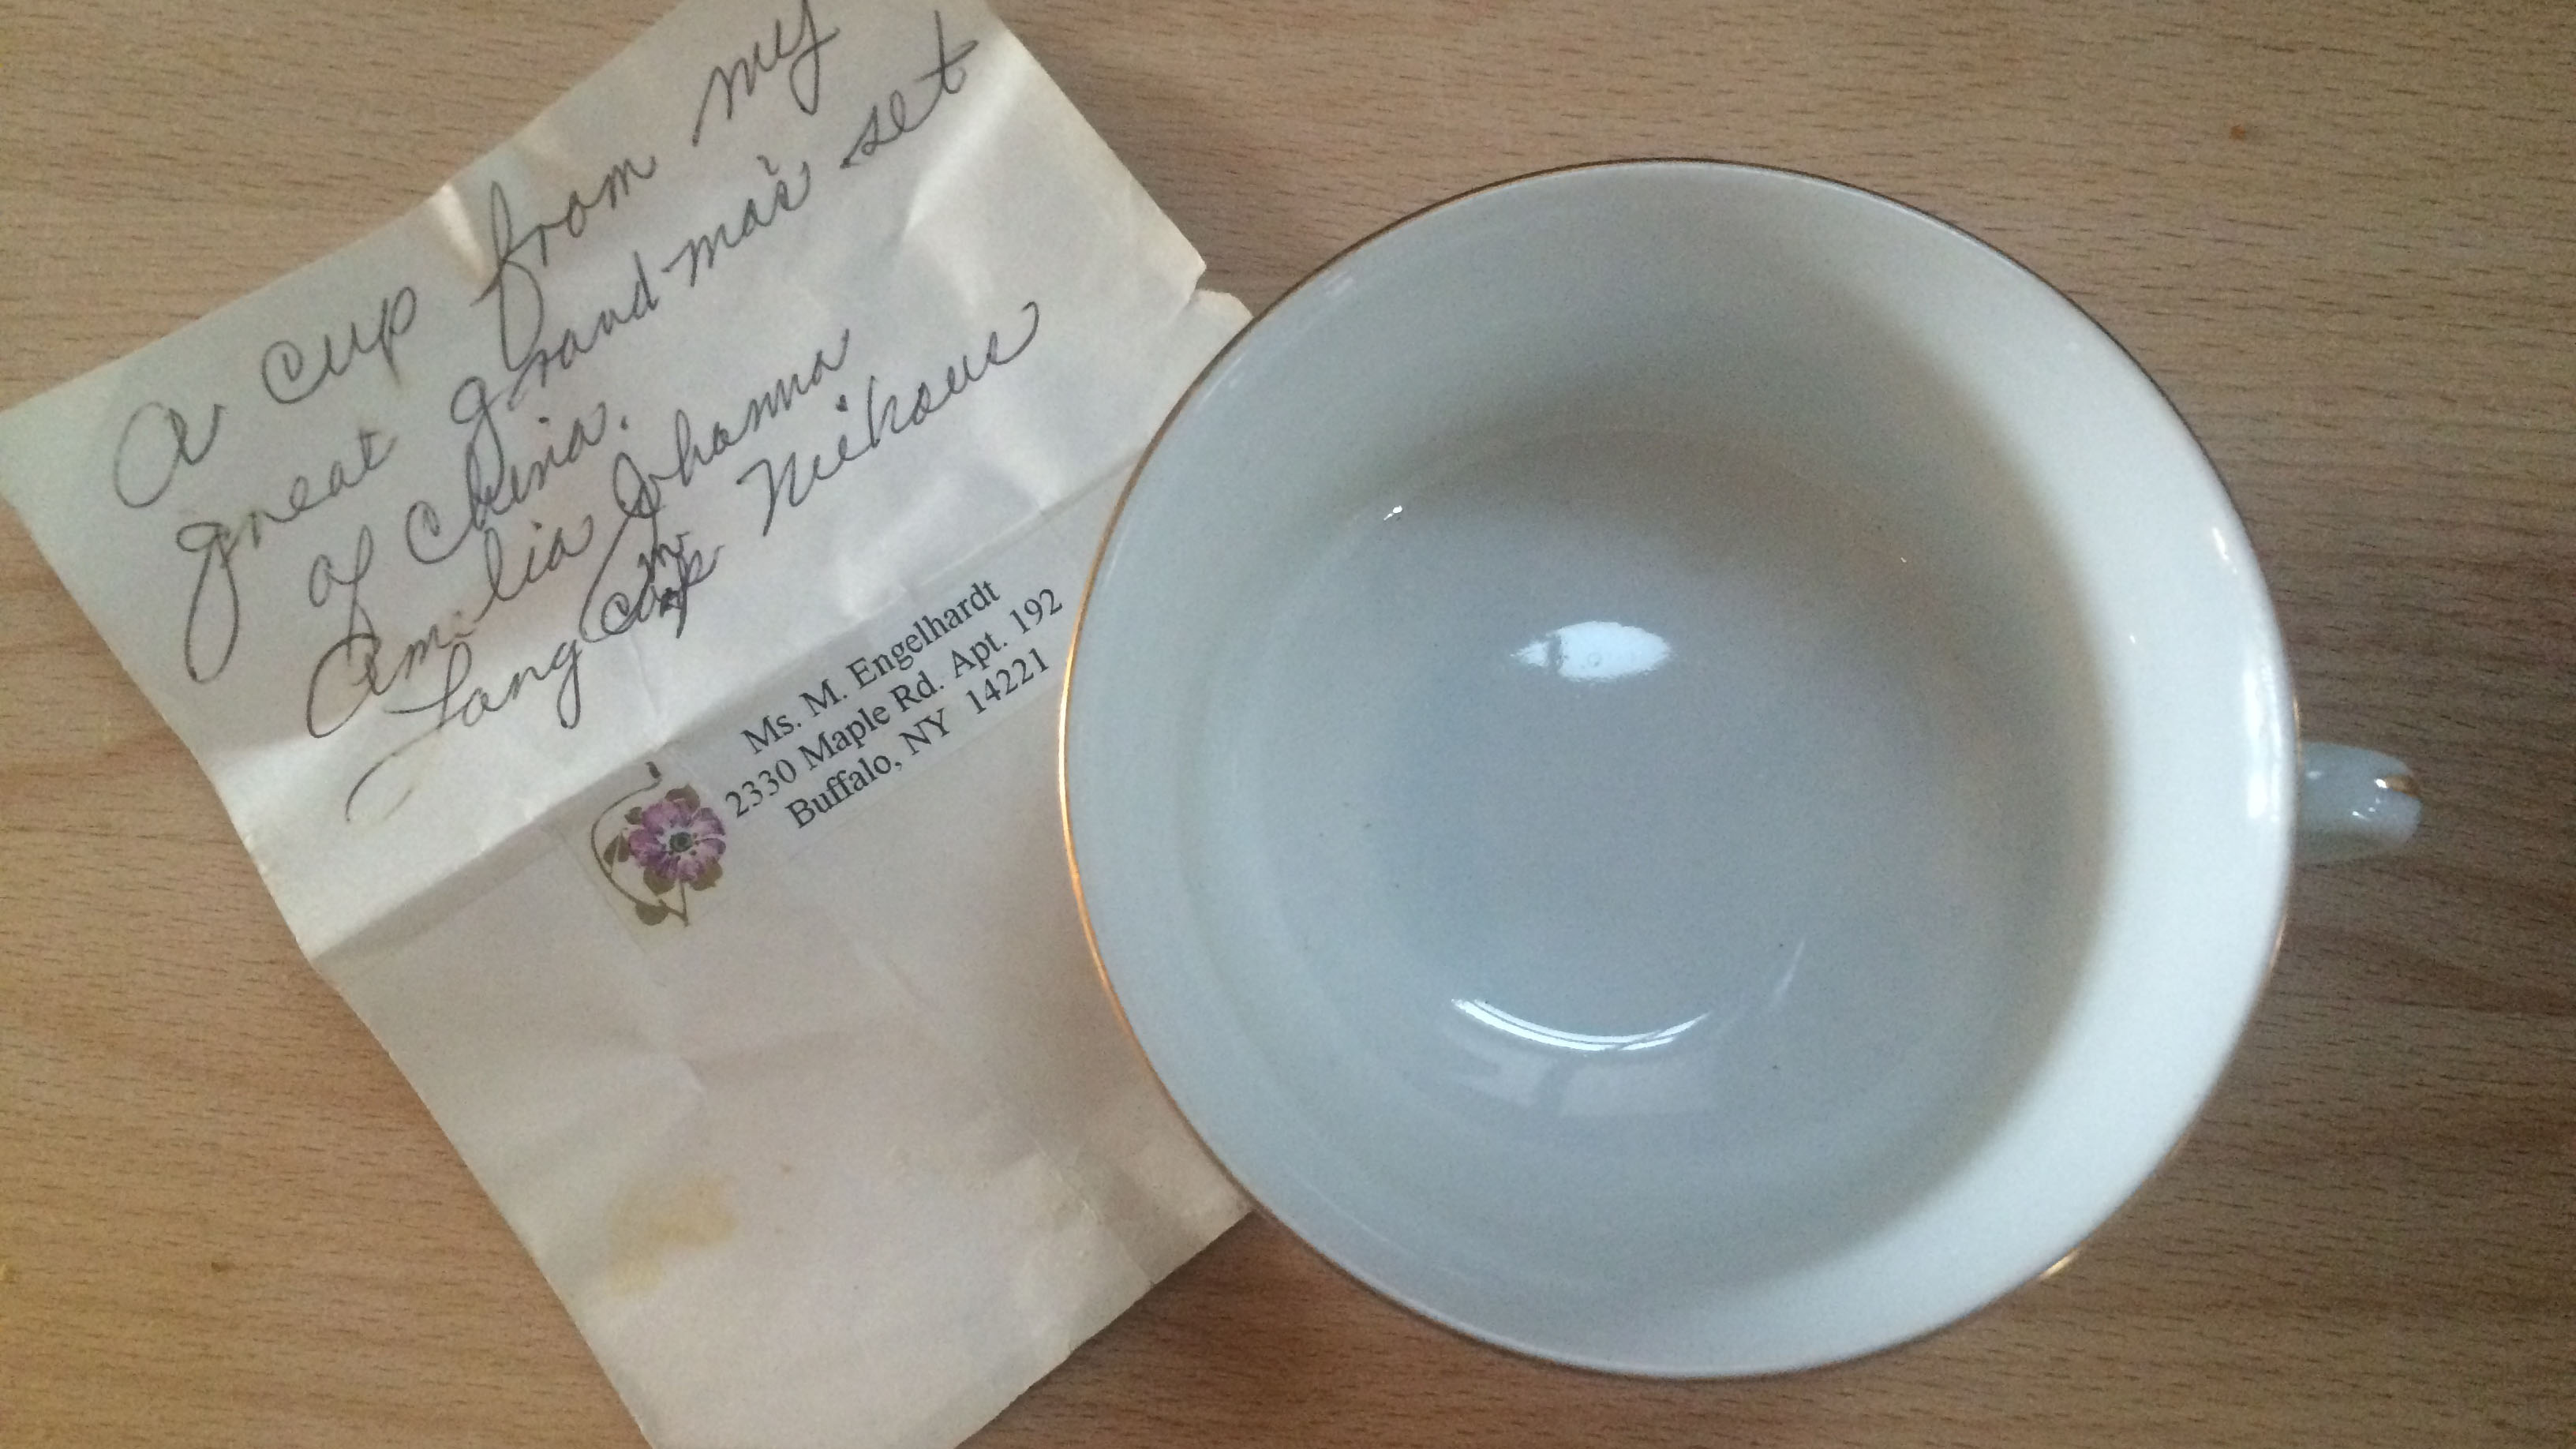 A tea cup and handwritten note from my Grandmother.